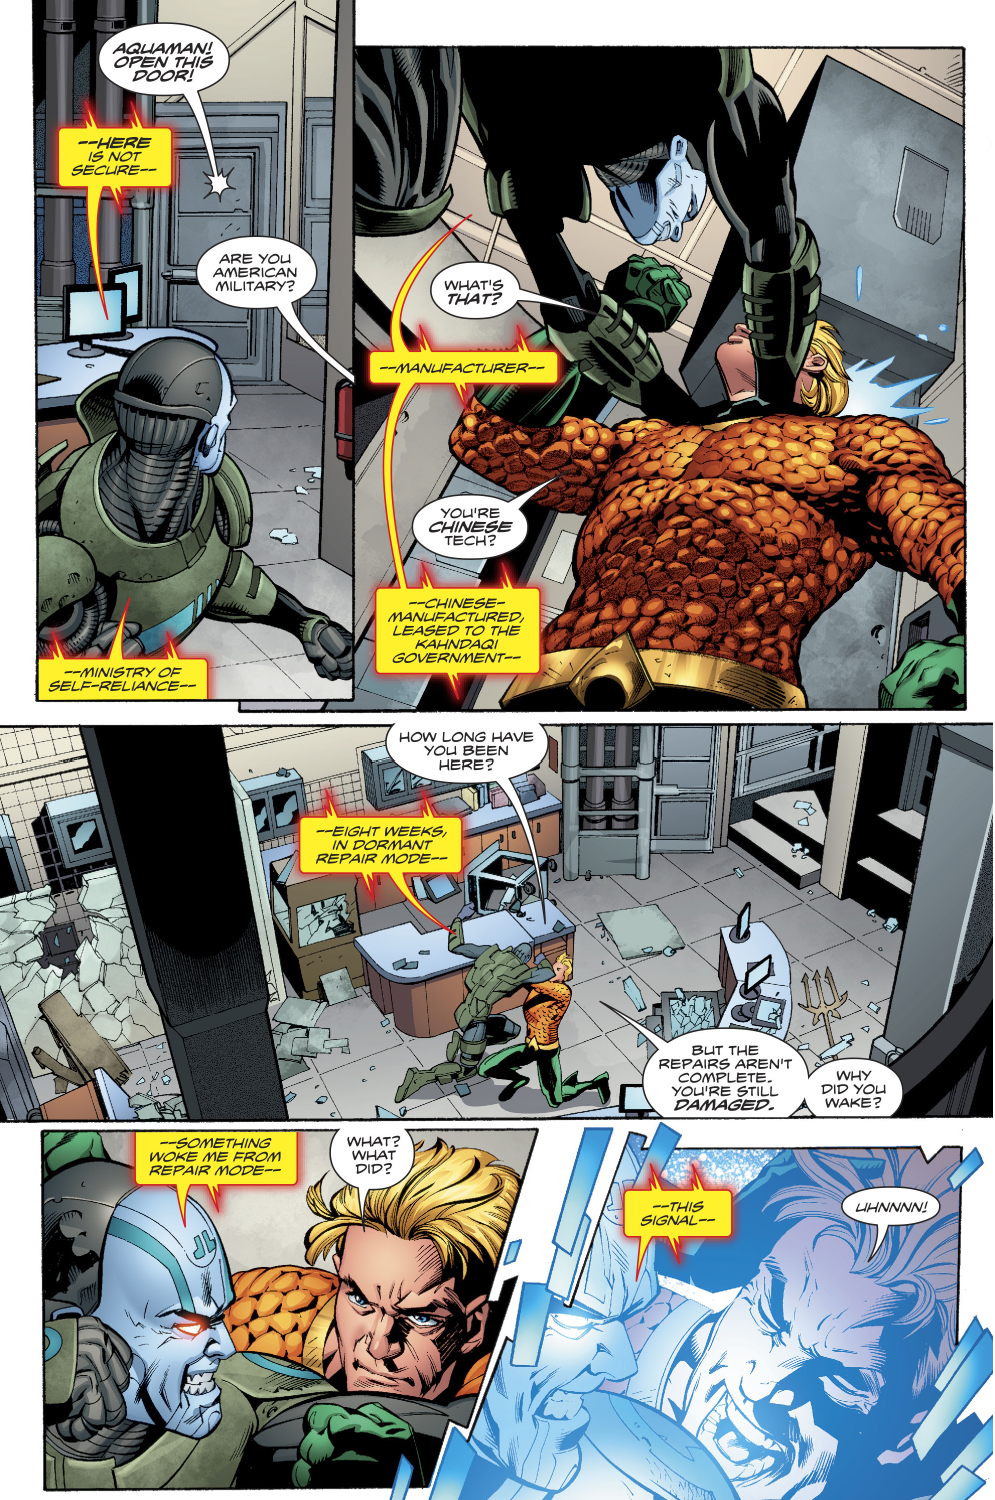 Aquaman Learns Warheads Background Story Comicnewbies 995x1500